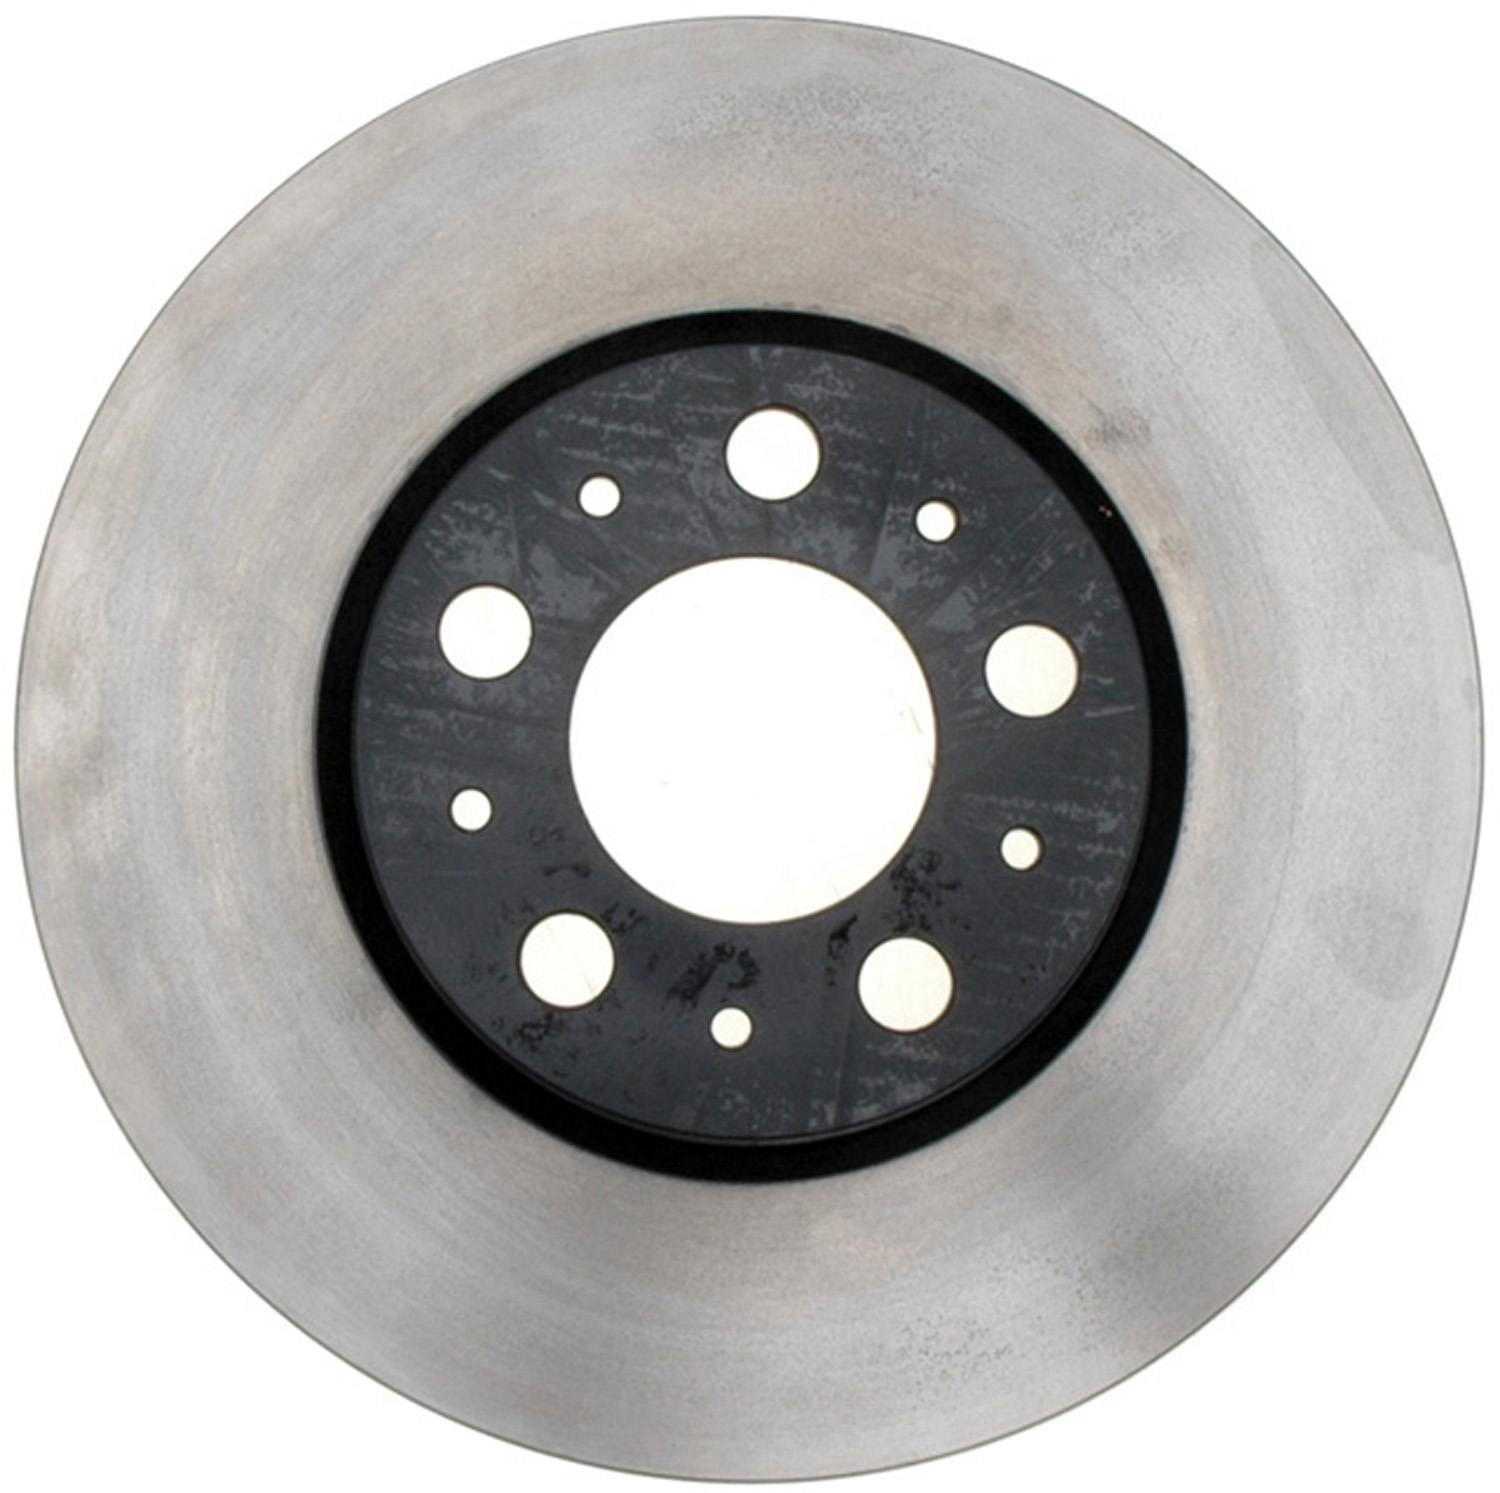 ACDELCO PROFESSIONAL BRAKES - Disc Brake Rotor - ADU 18A1447